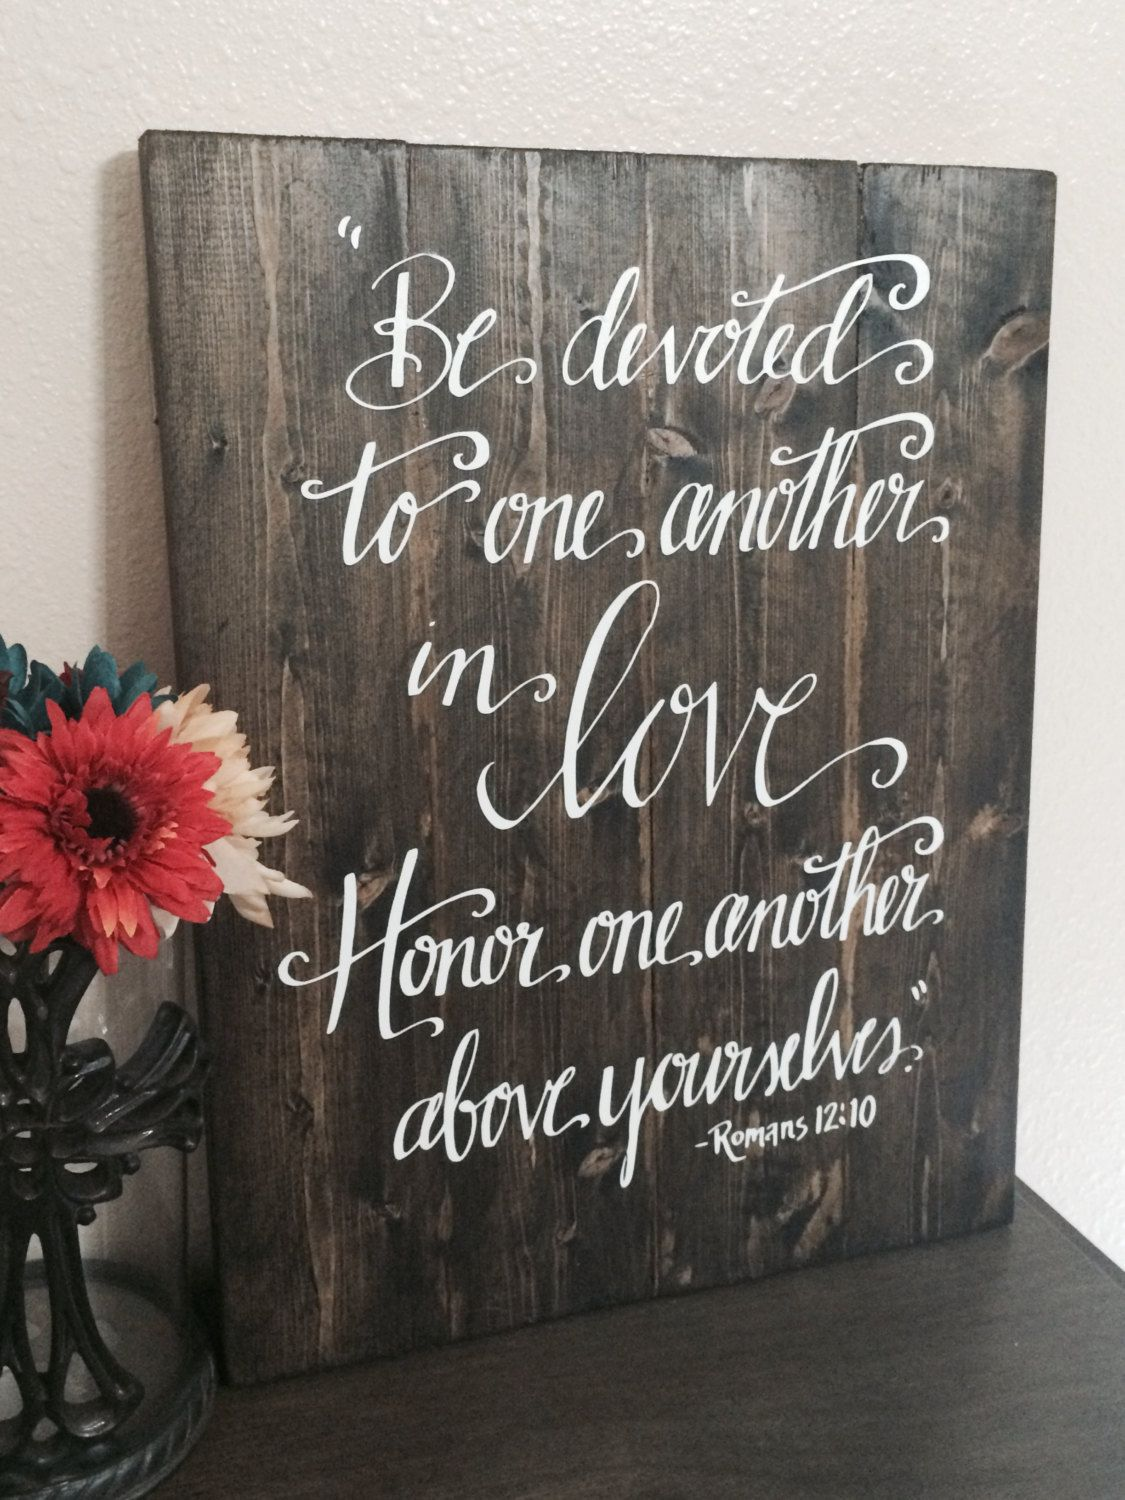 Pin by Registry 4 Wedding on Online Registry Wedding | Pinterest ...